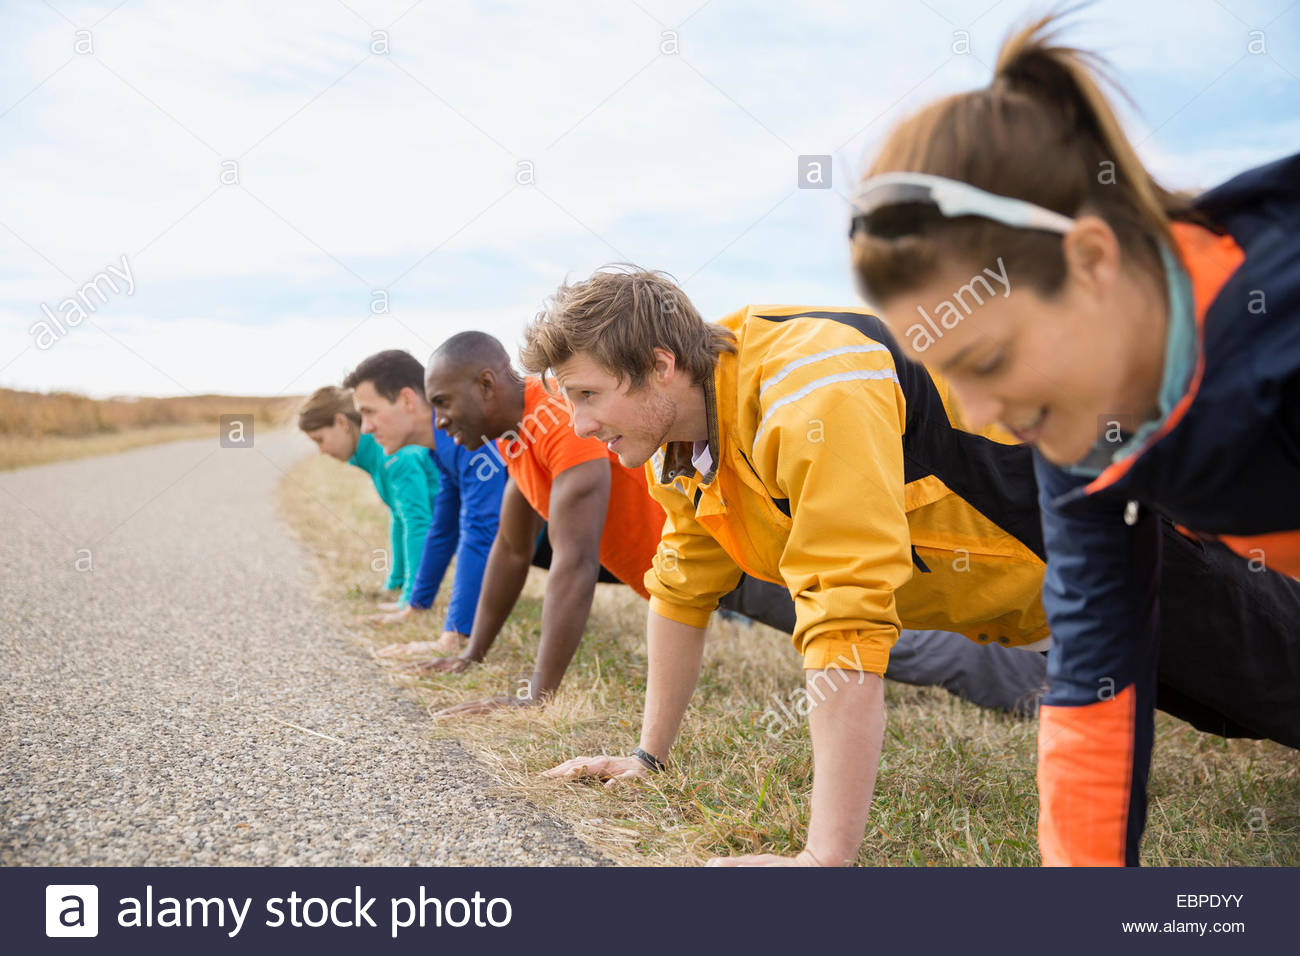 Group doing push-ups in a row - Stock Image